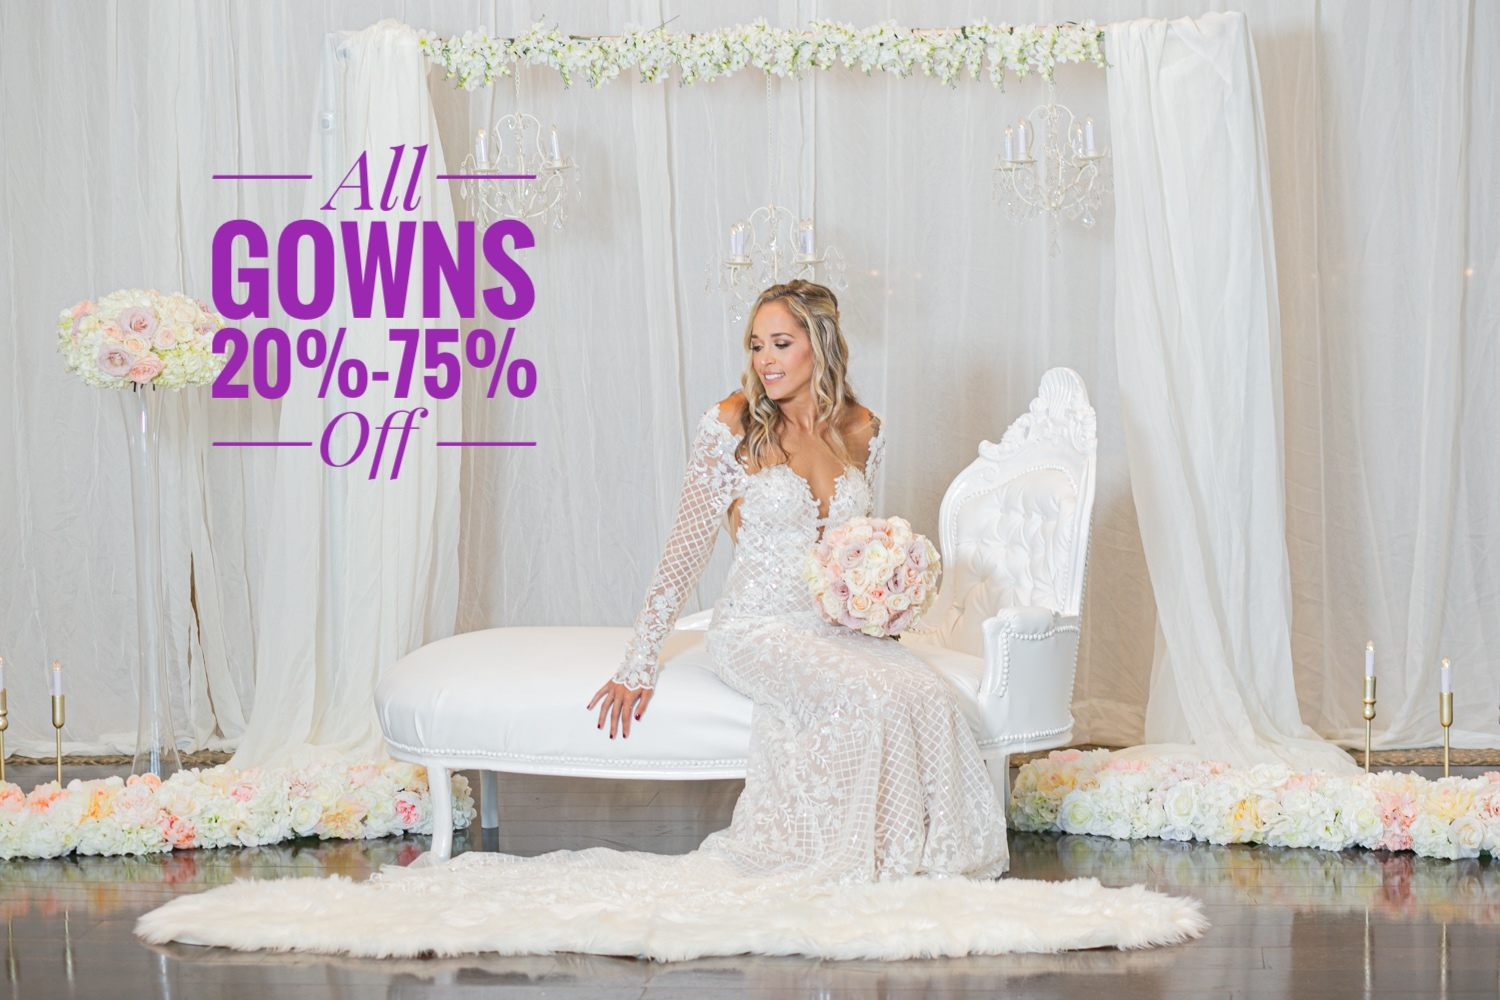 Image for post: All Wedding Gowns on Sale! Feb 15-20, 2021